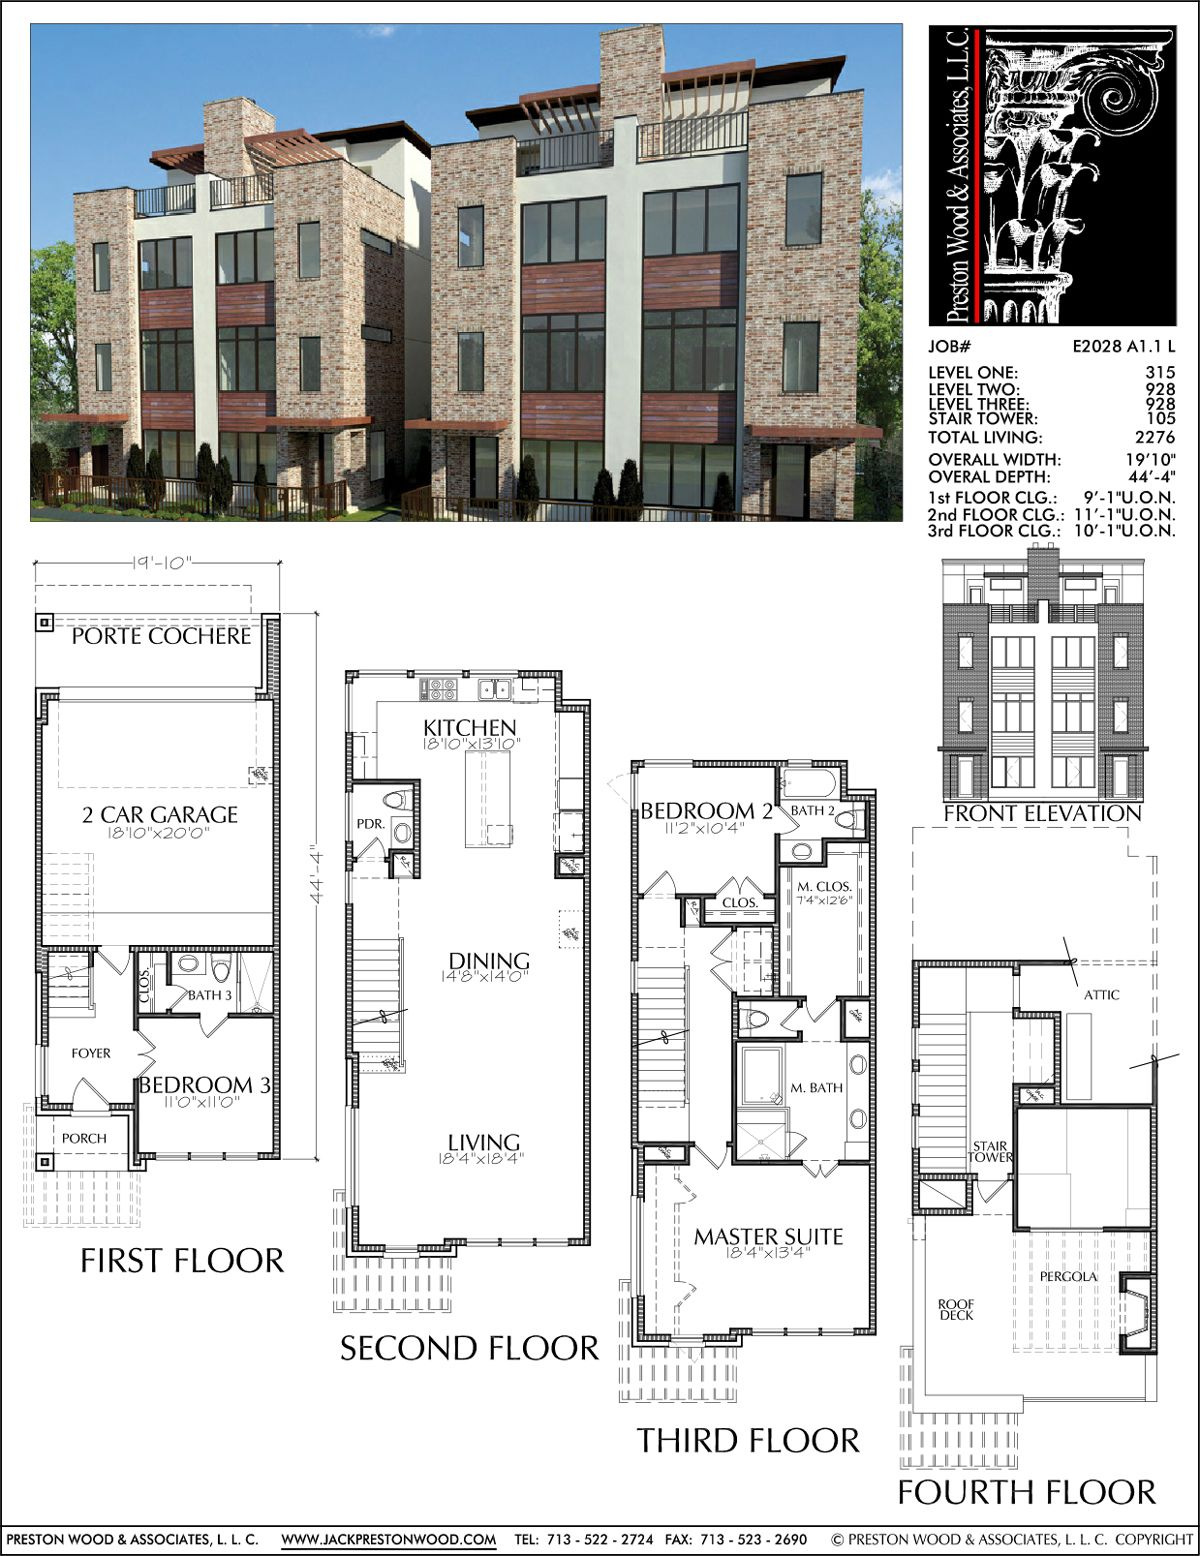 Duplex townhome plan e2028 a1 1 small modern house Luxury townhome floor plans